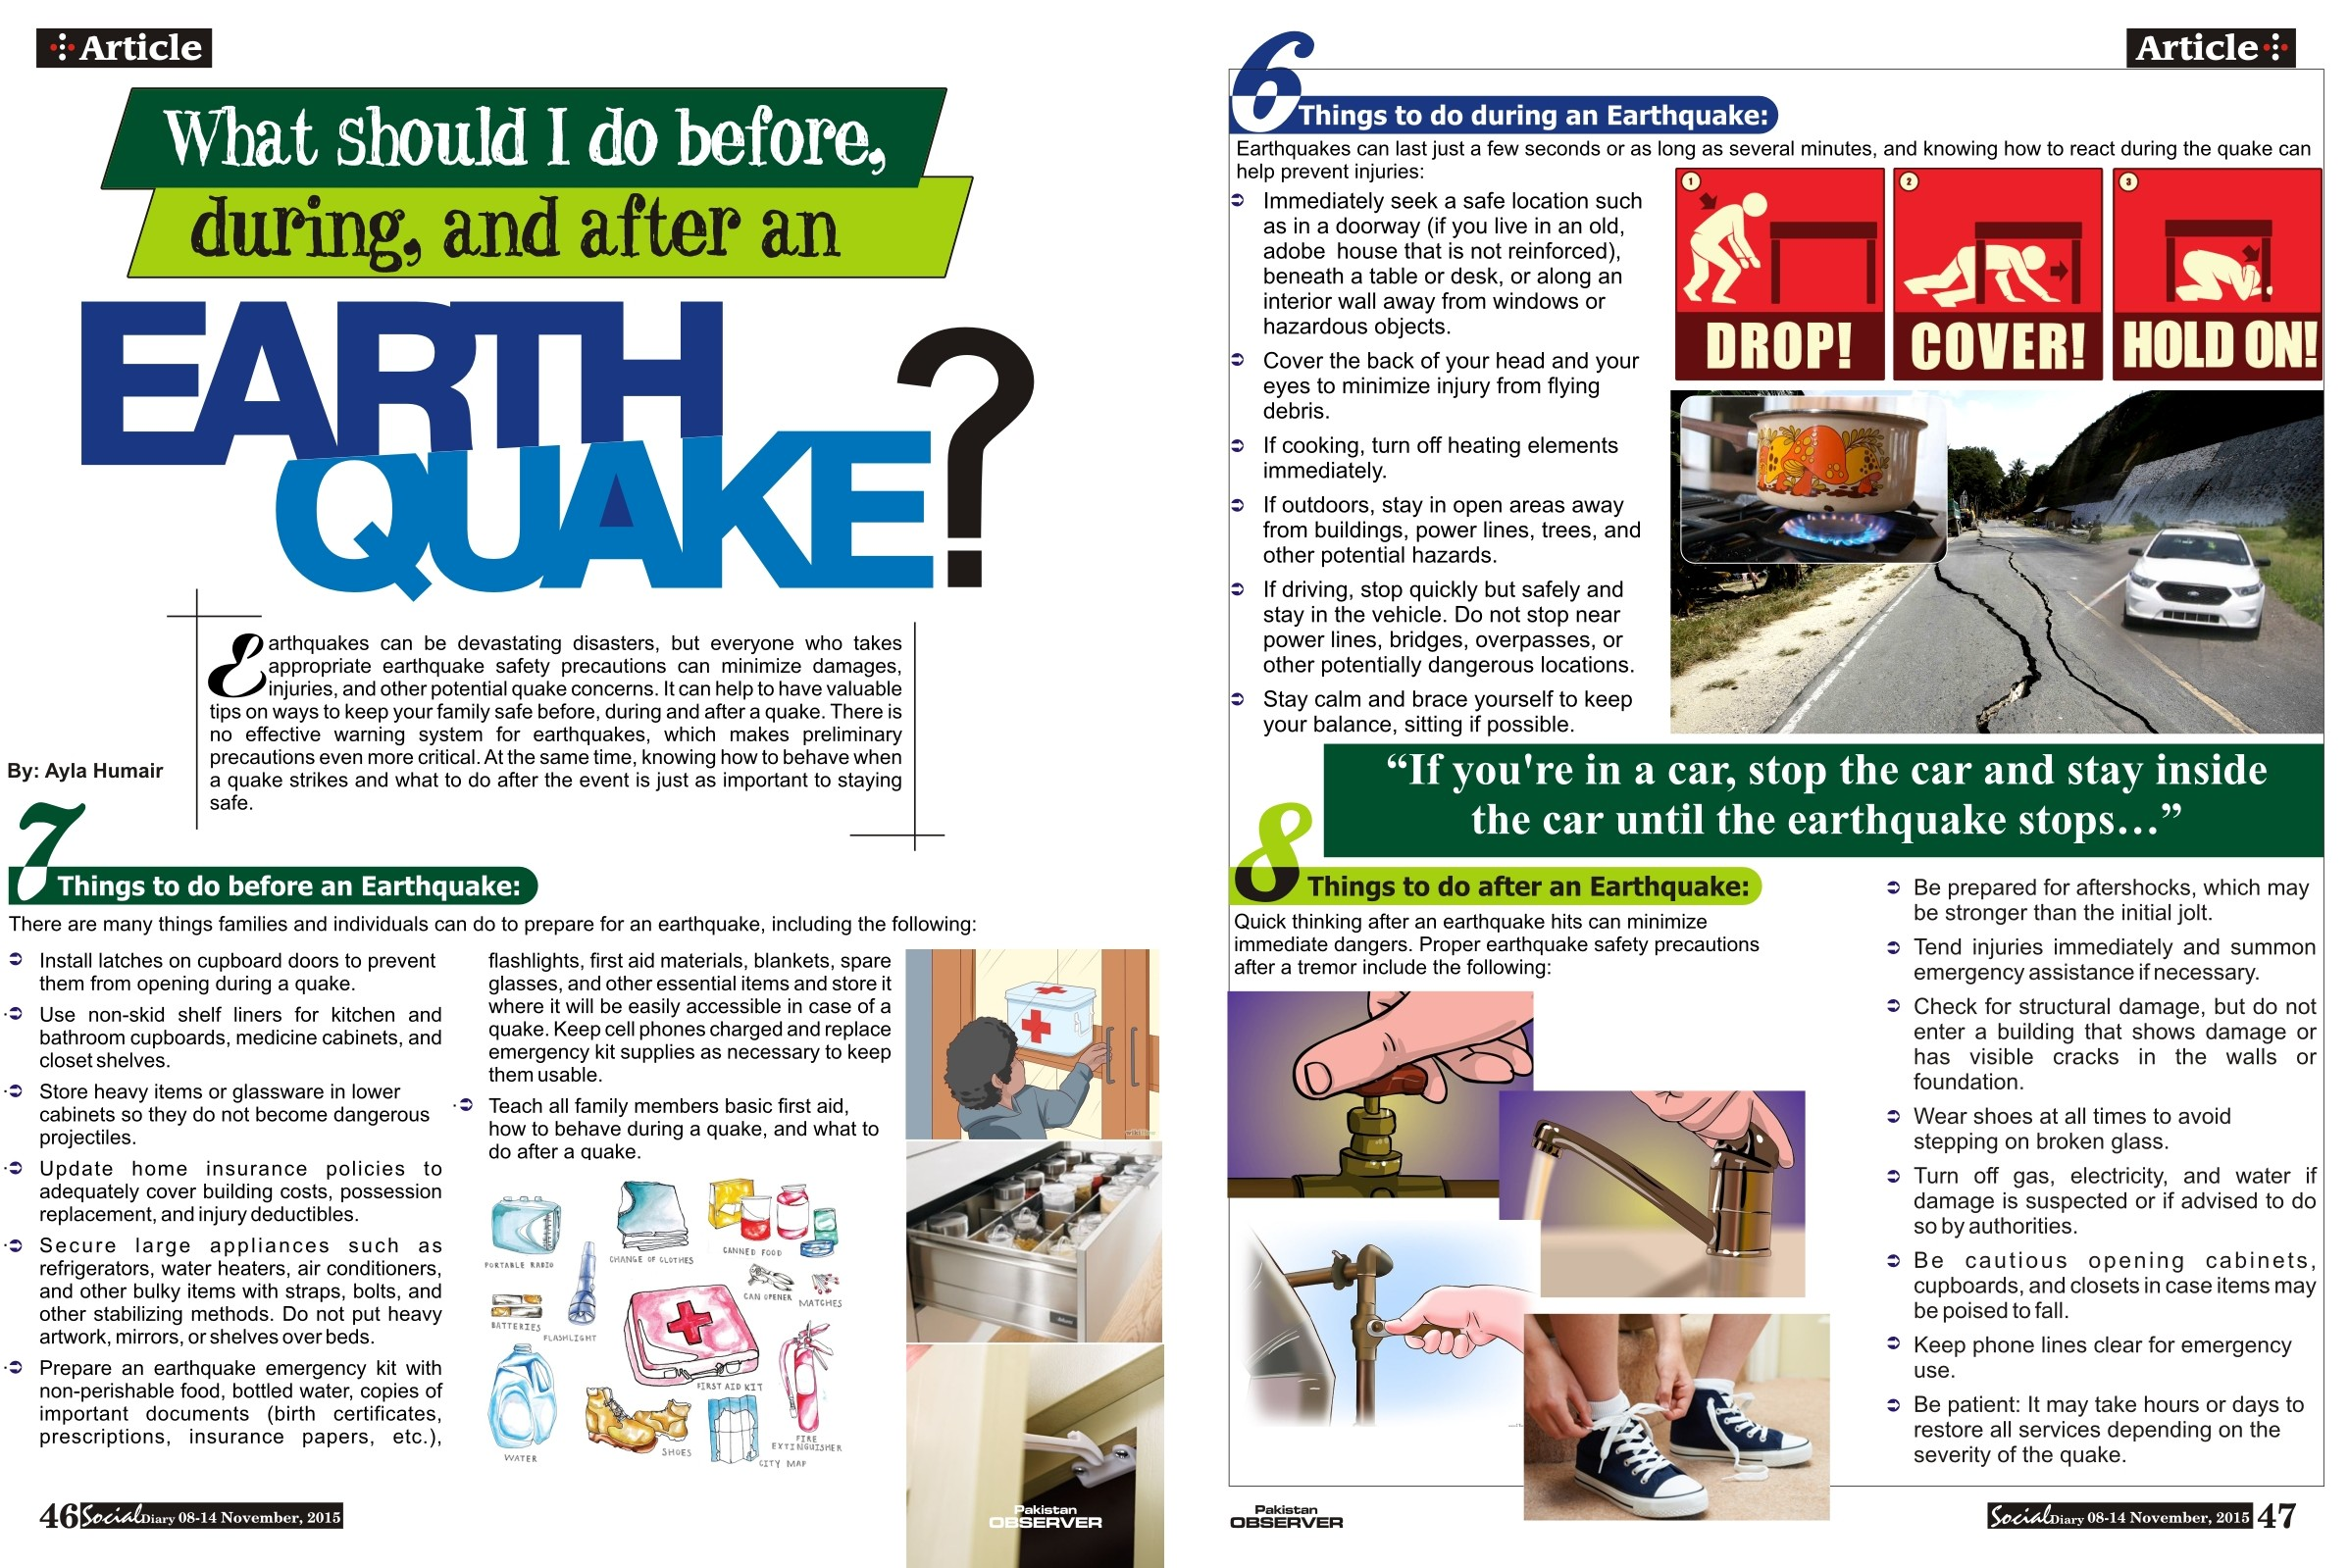 What should I do before, during, and after an EARTHQUAKE?.